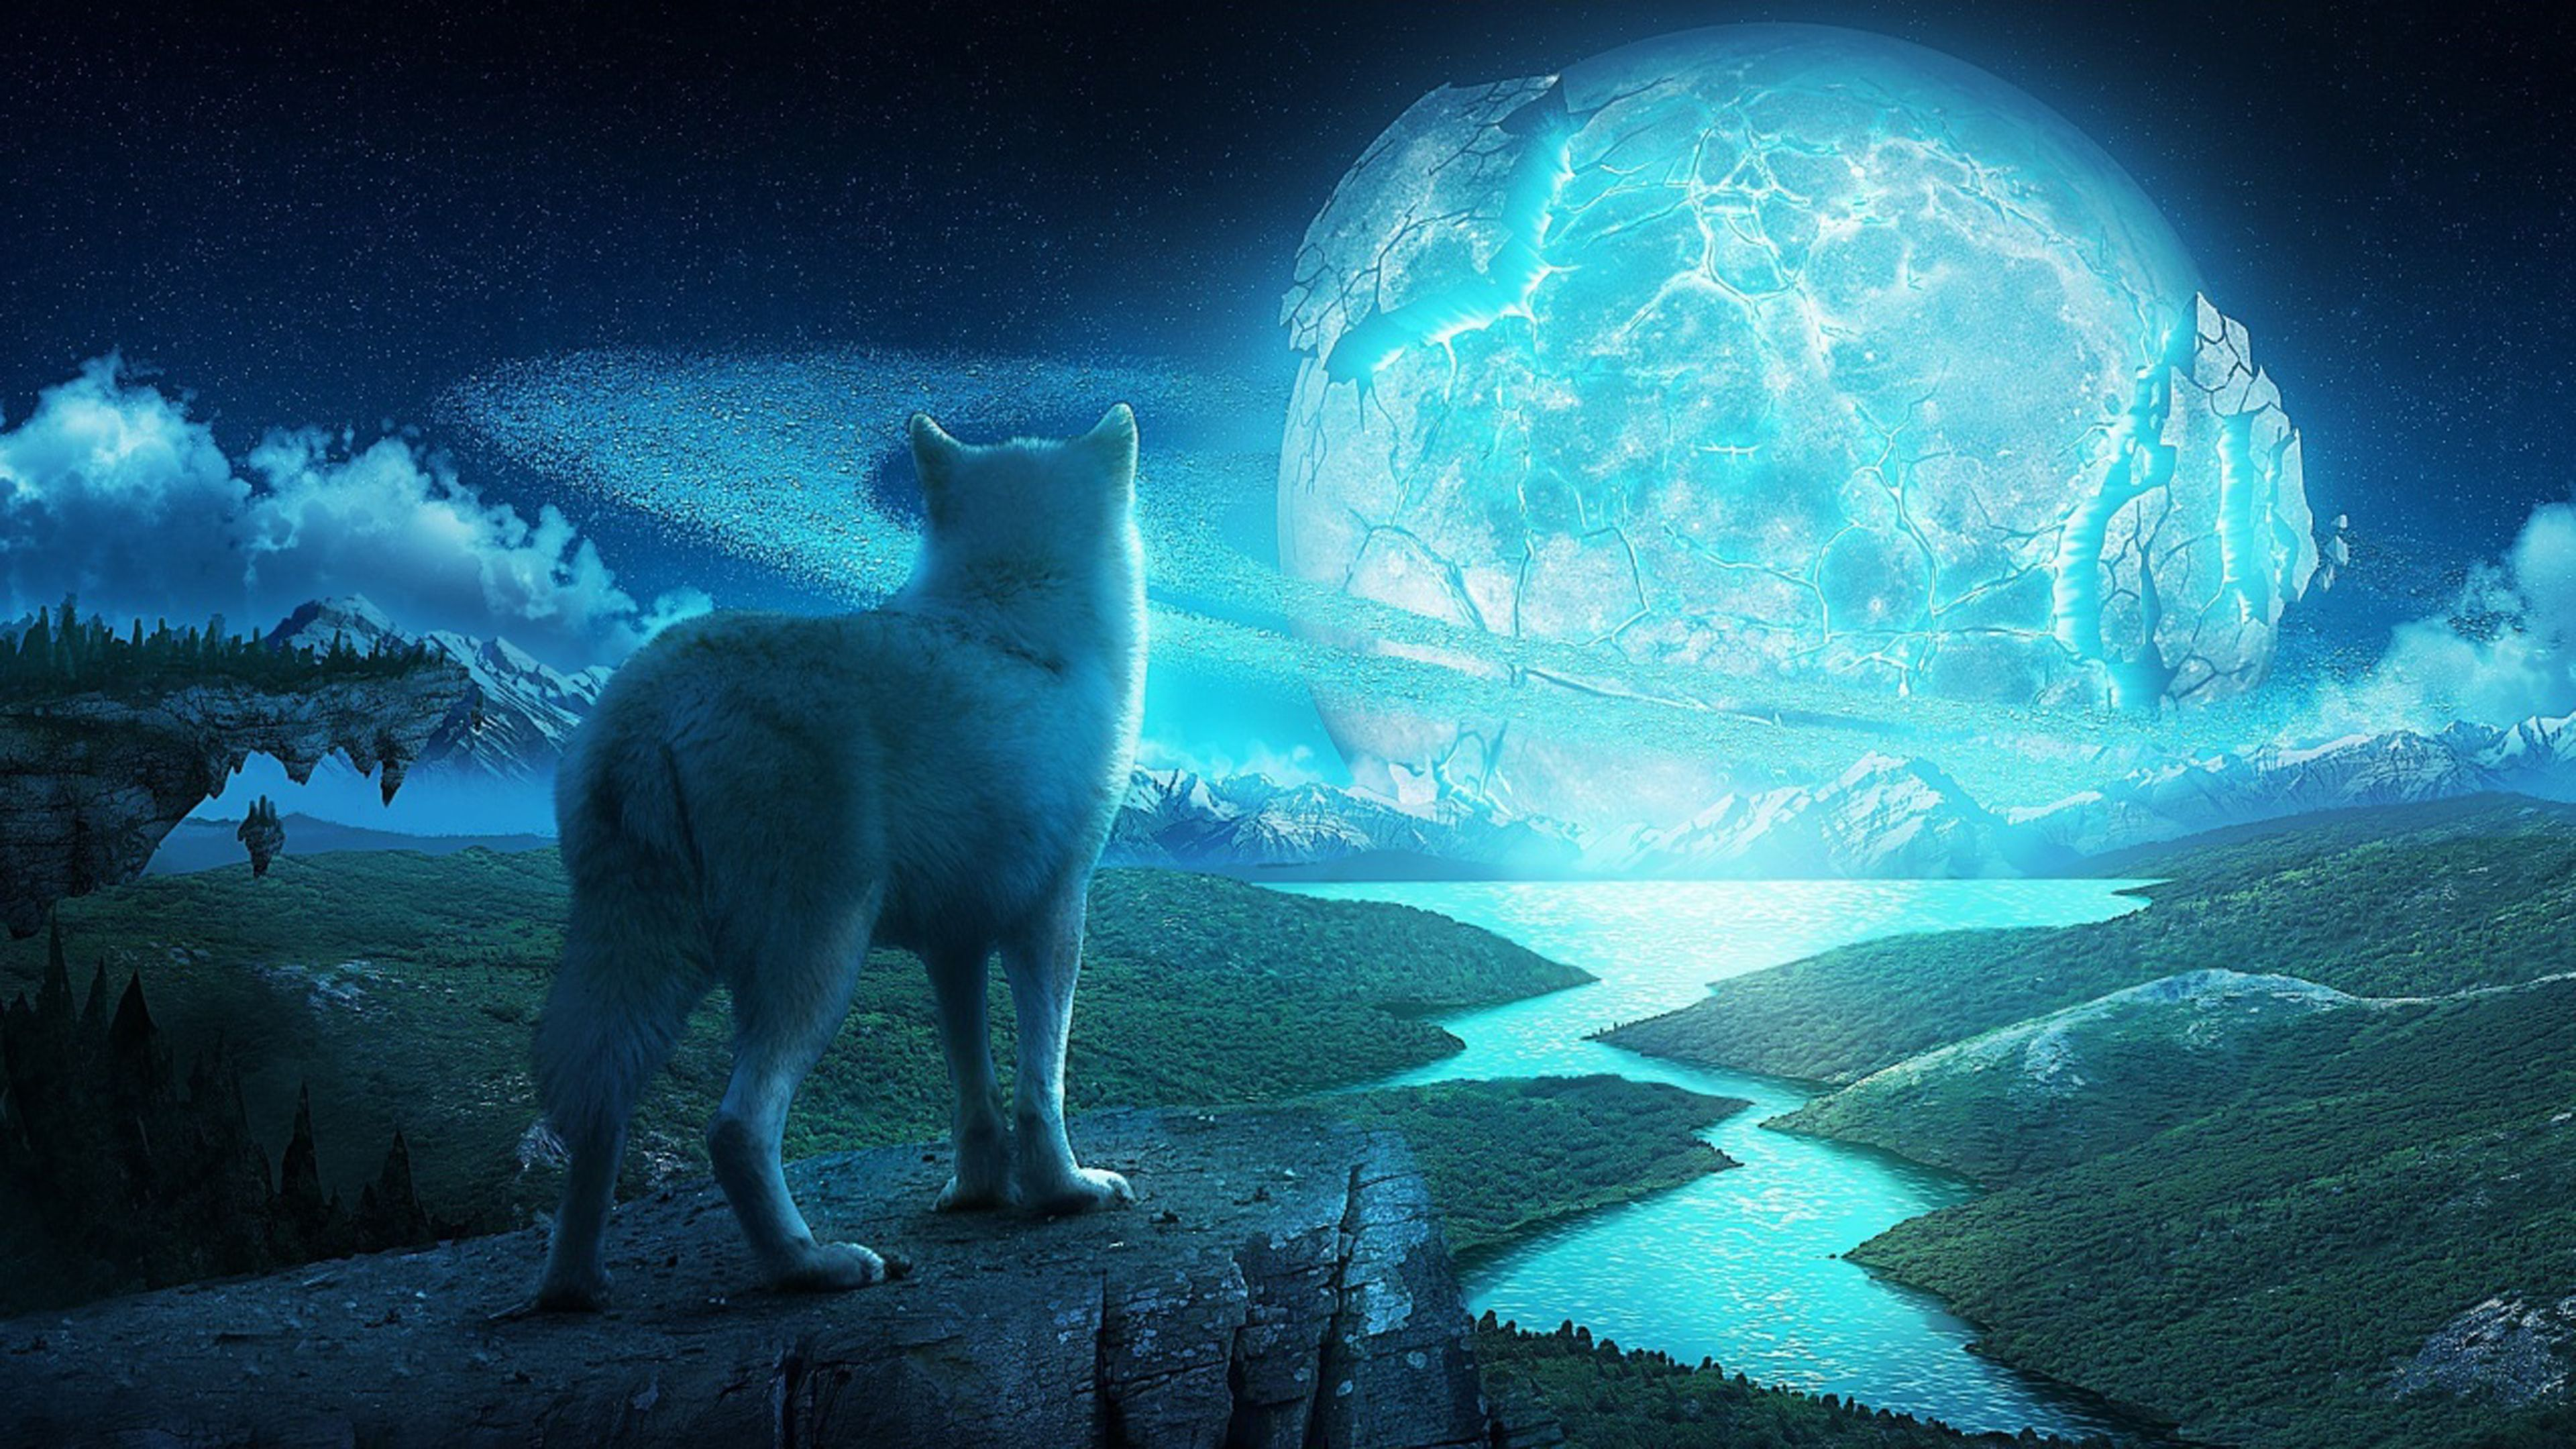 Anime Wallpaper 4k Fantasy The Mystical Wolf Fantasy Wallpaper Background Picture Wolf 28 Granblue Fantasy Hd In 2020 Hd Anime Wallpapers Anime Wolf Animal Wallpaper